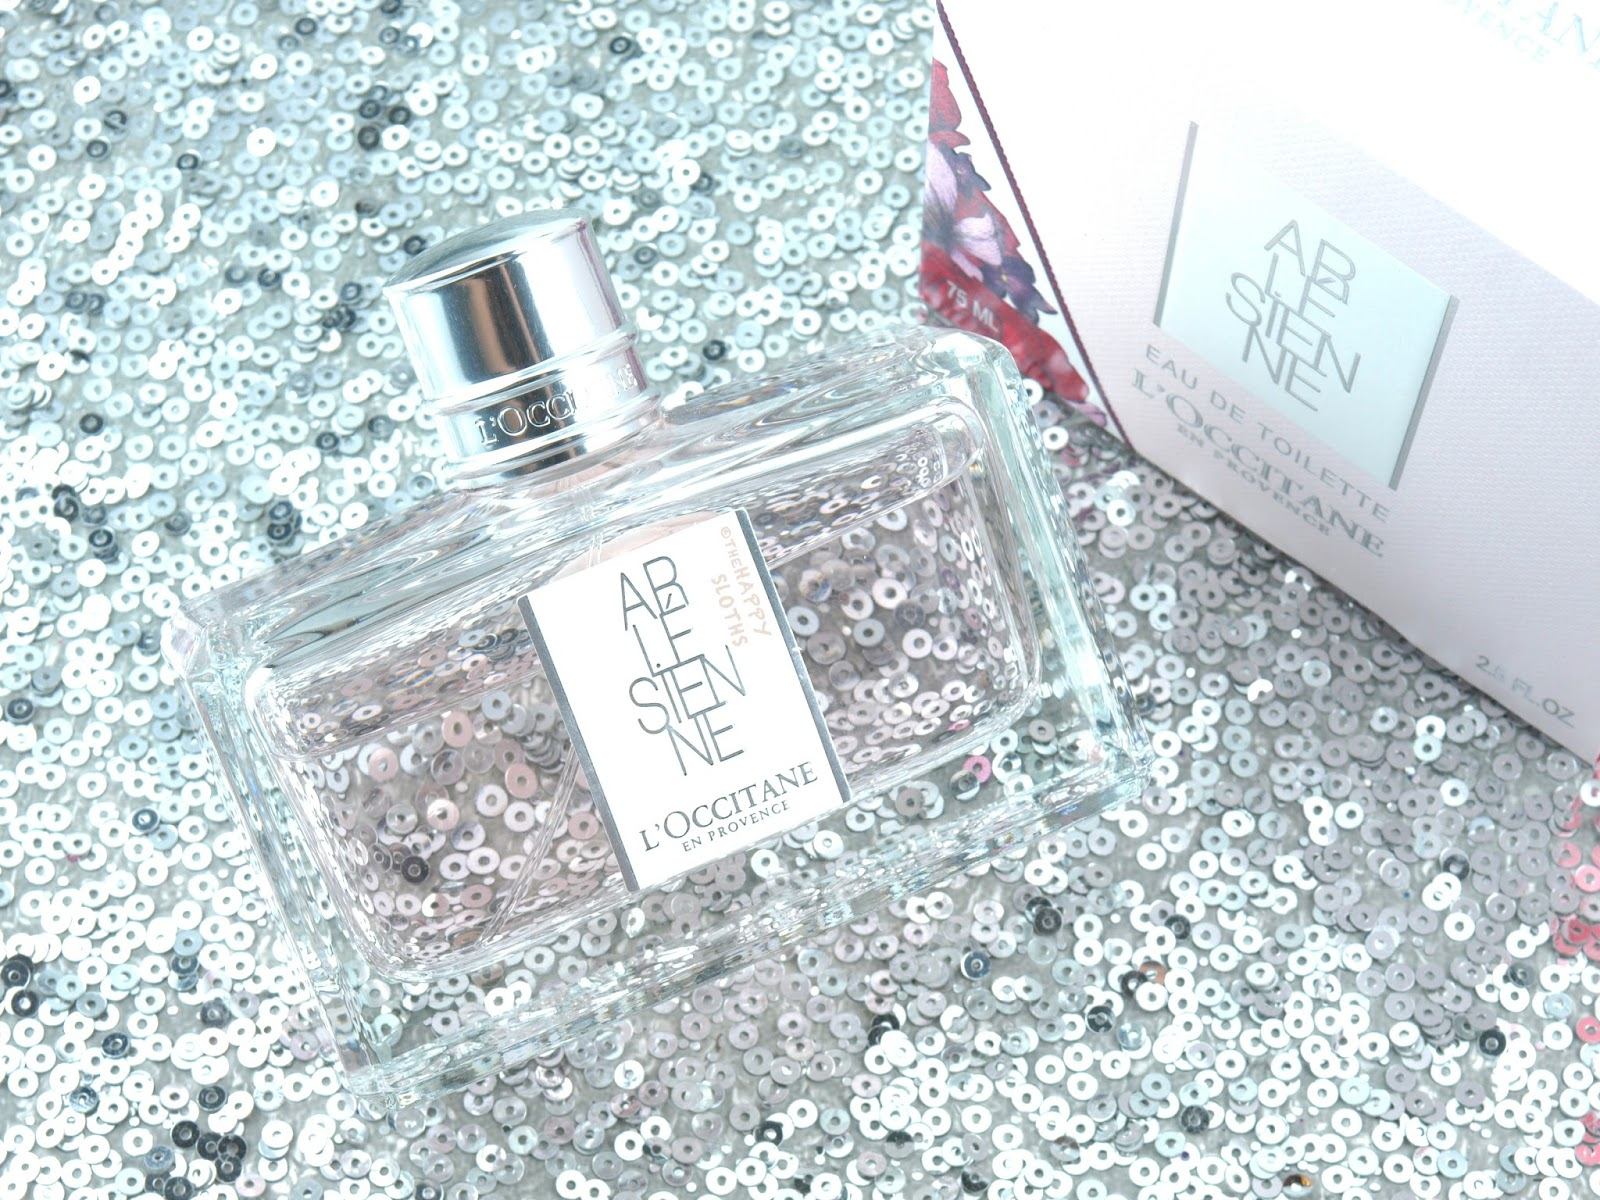 L'Occitane Holiday 2016 Arlesienne Eau de Toilette: Review